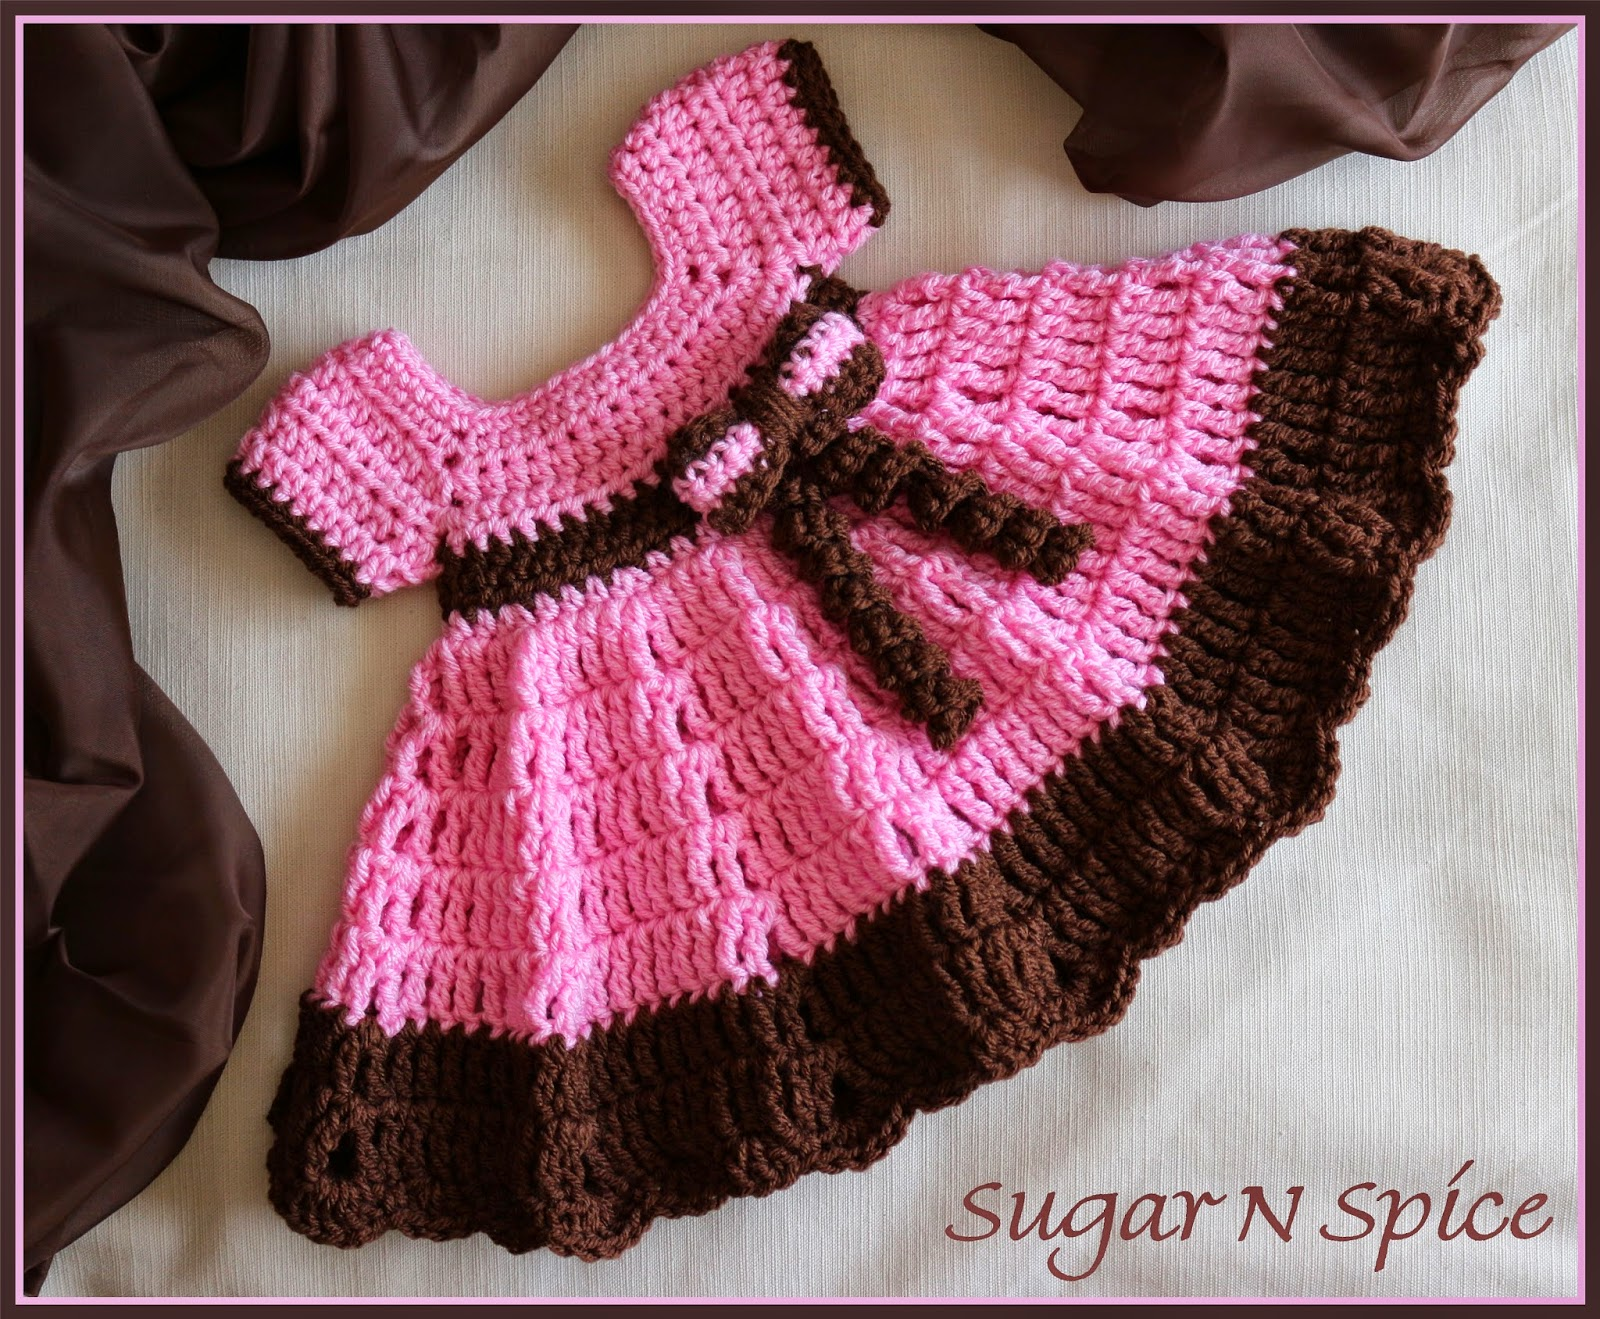 Easy Crochet Baby Dress Patterns Dress Up Your Pretty Little Princess